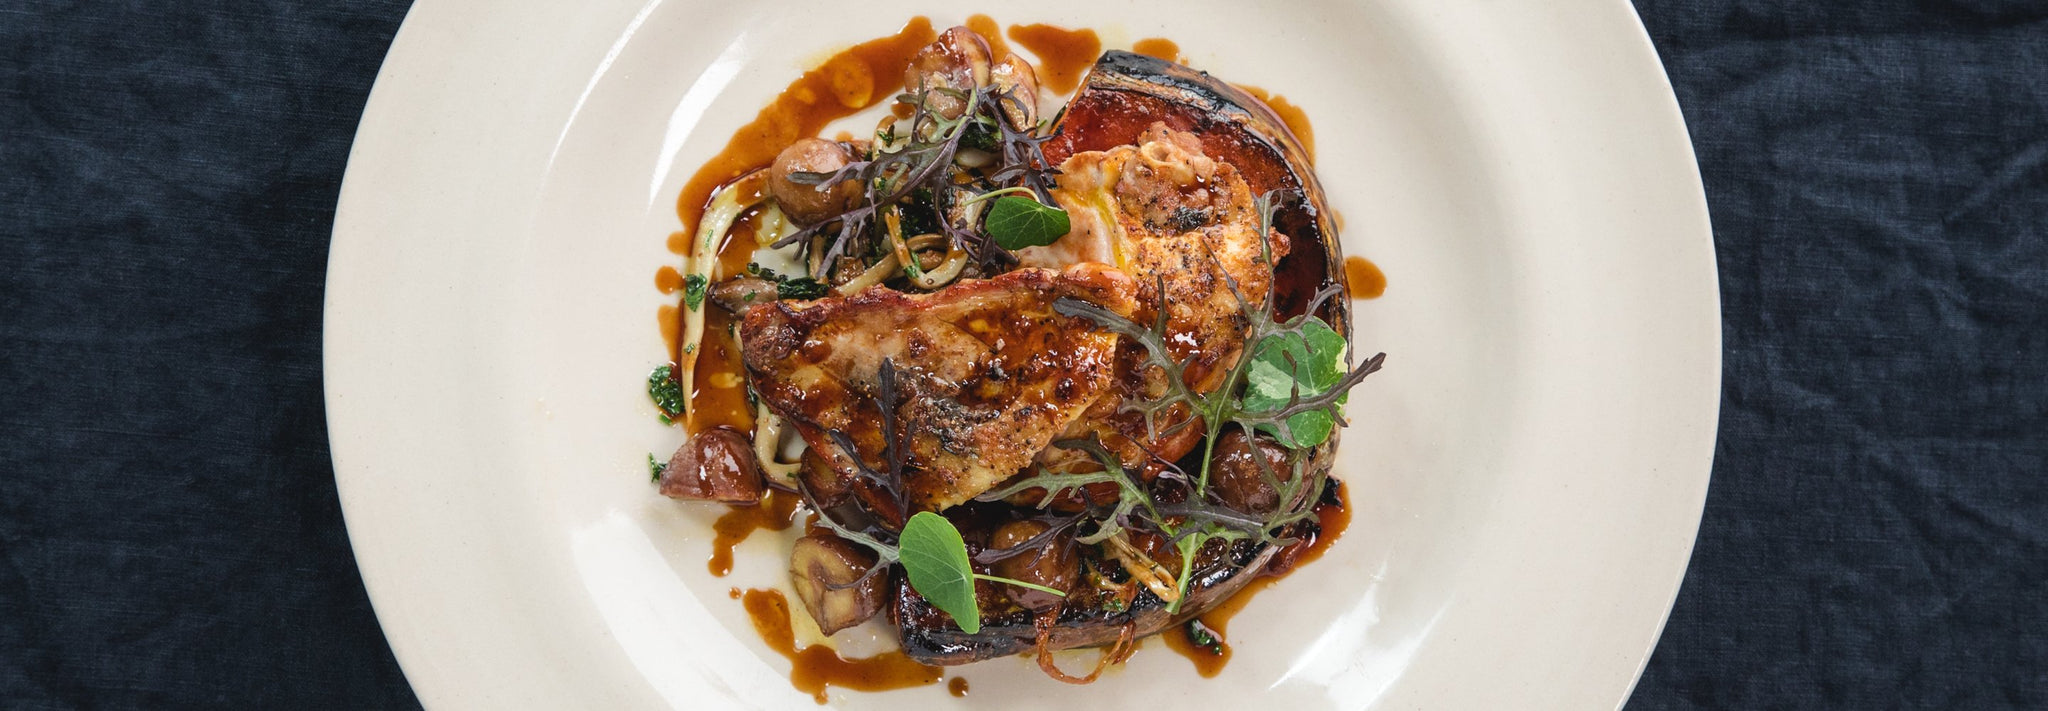 James Golding's Pheasant Breast with Oyster Mushrooms